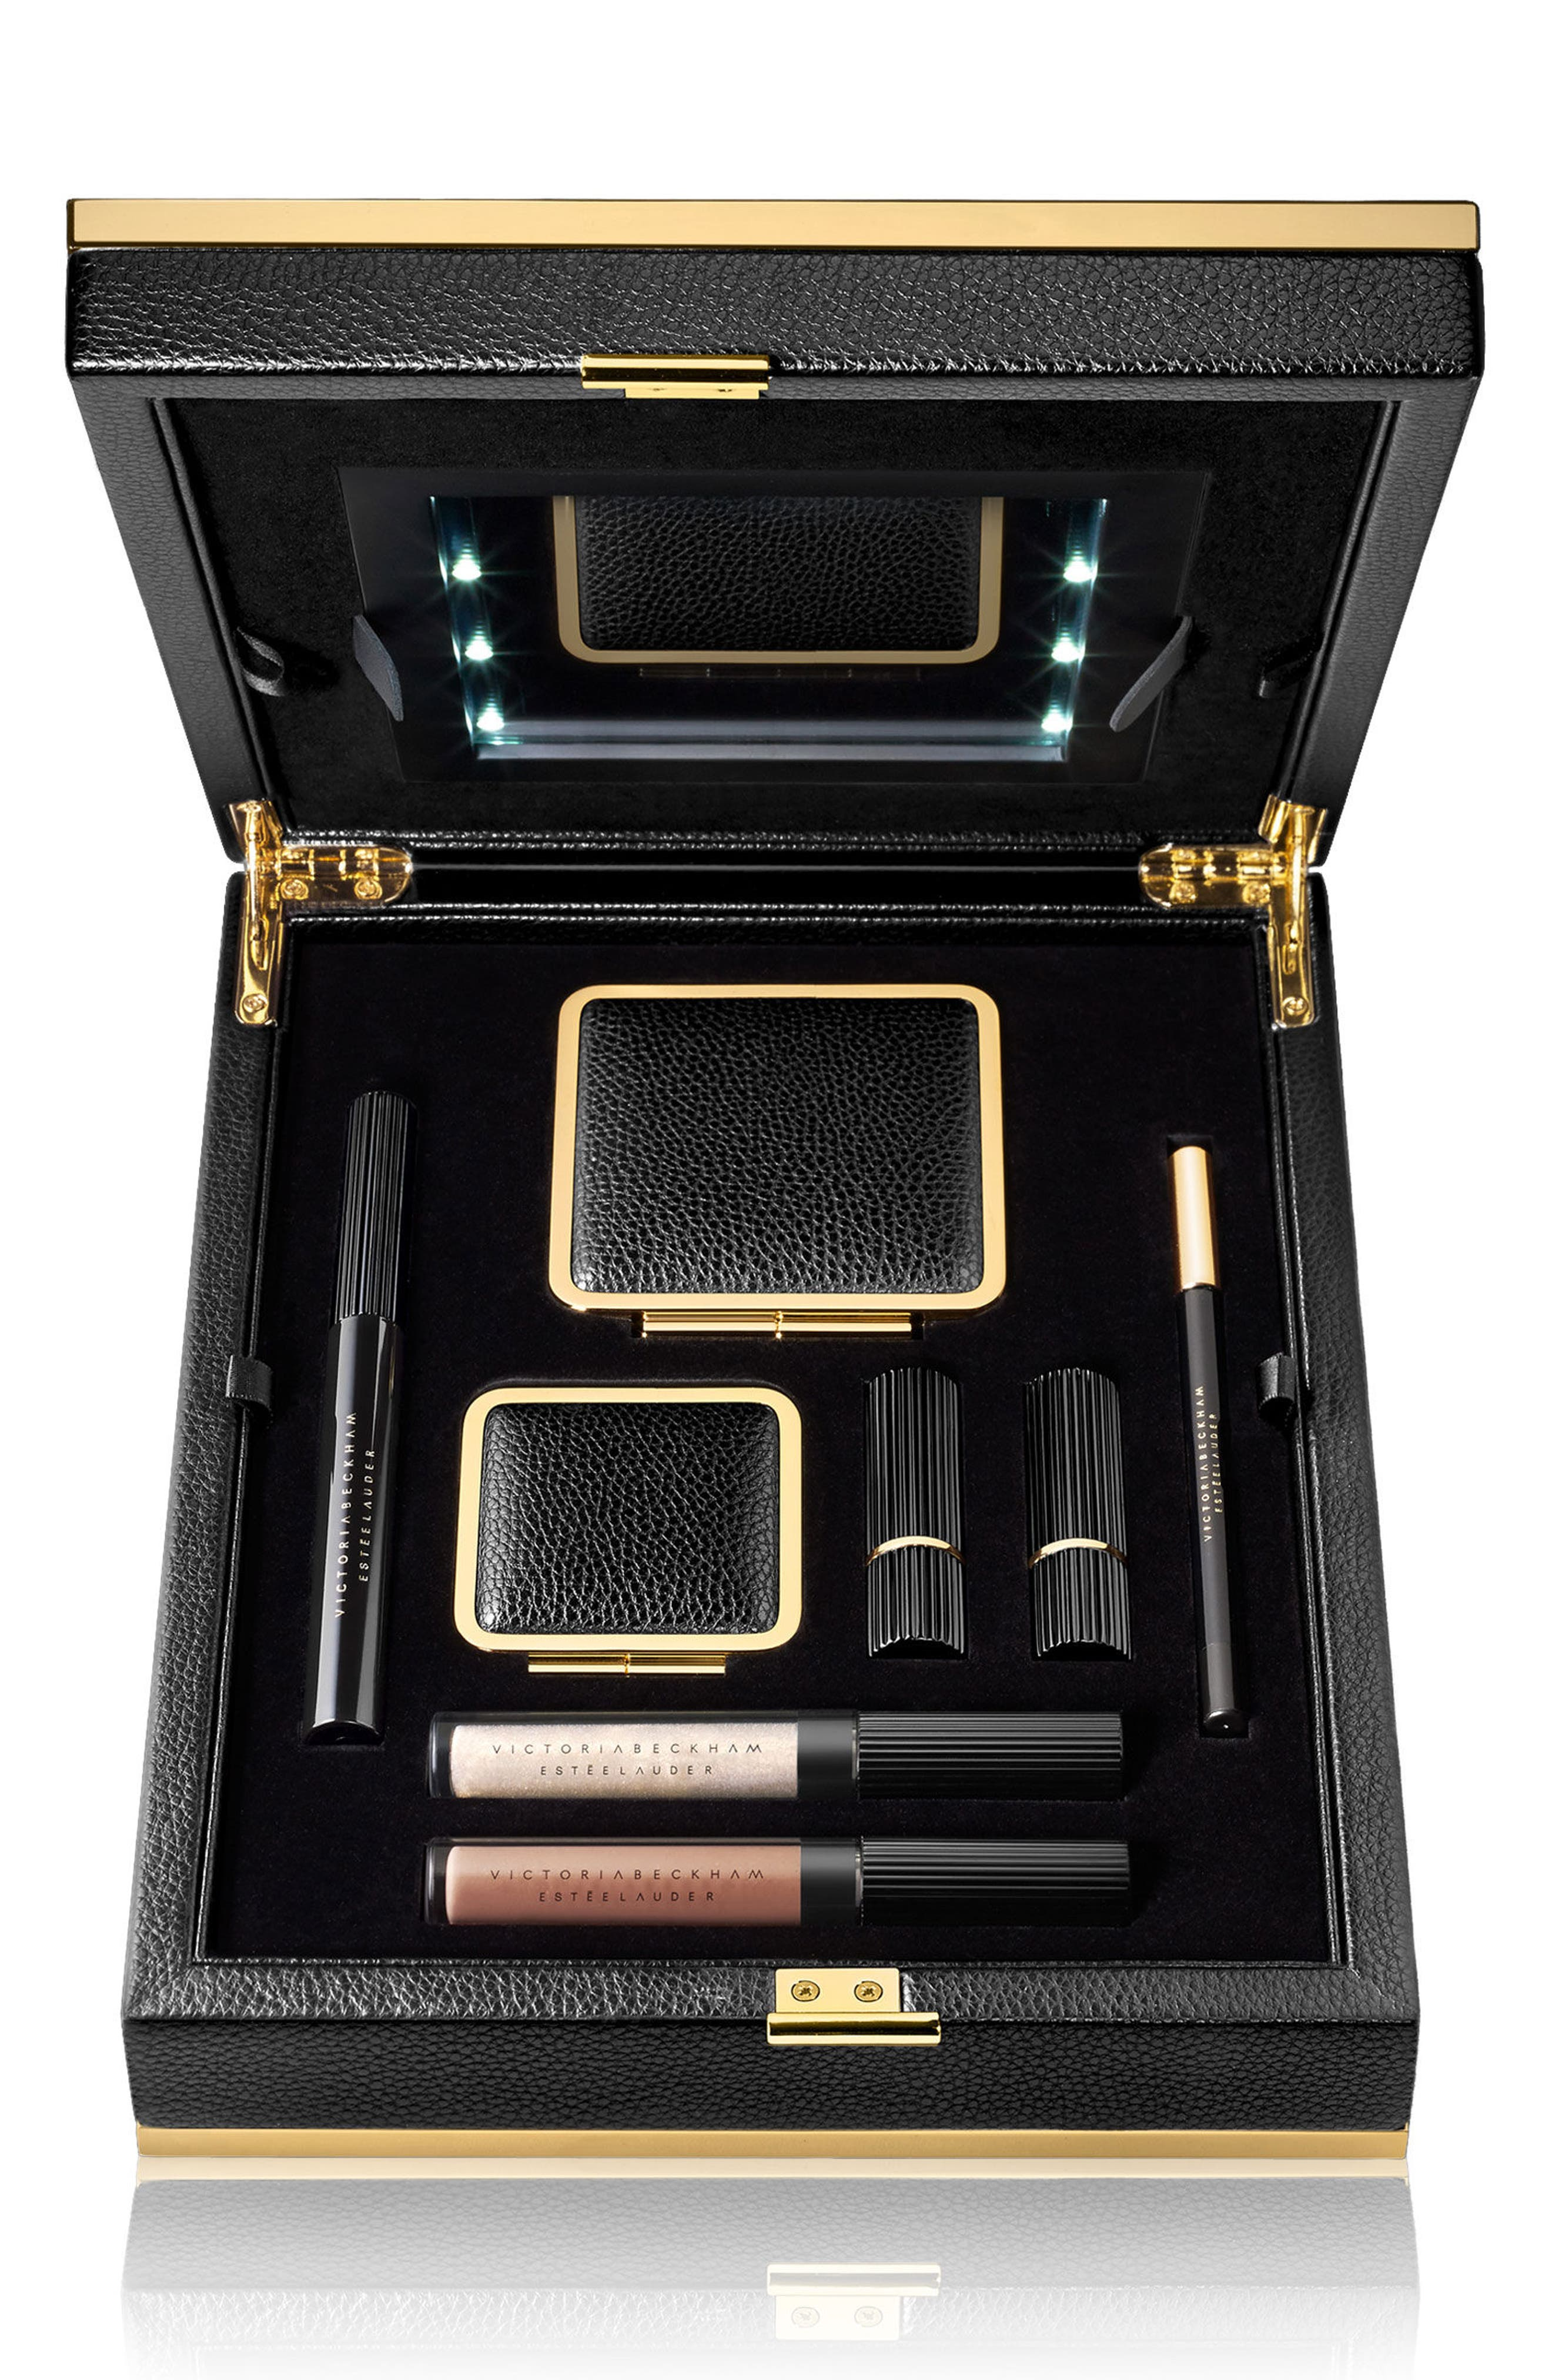 Estée Lauder Victoria Beckham Lit Beauty Box Noir (Limited Edition)